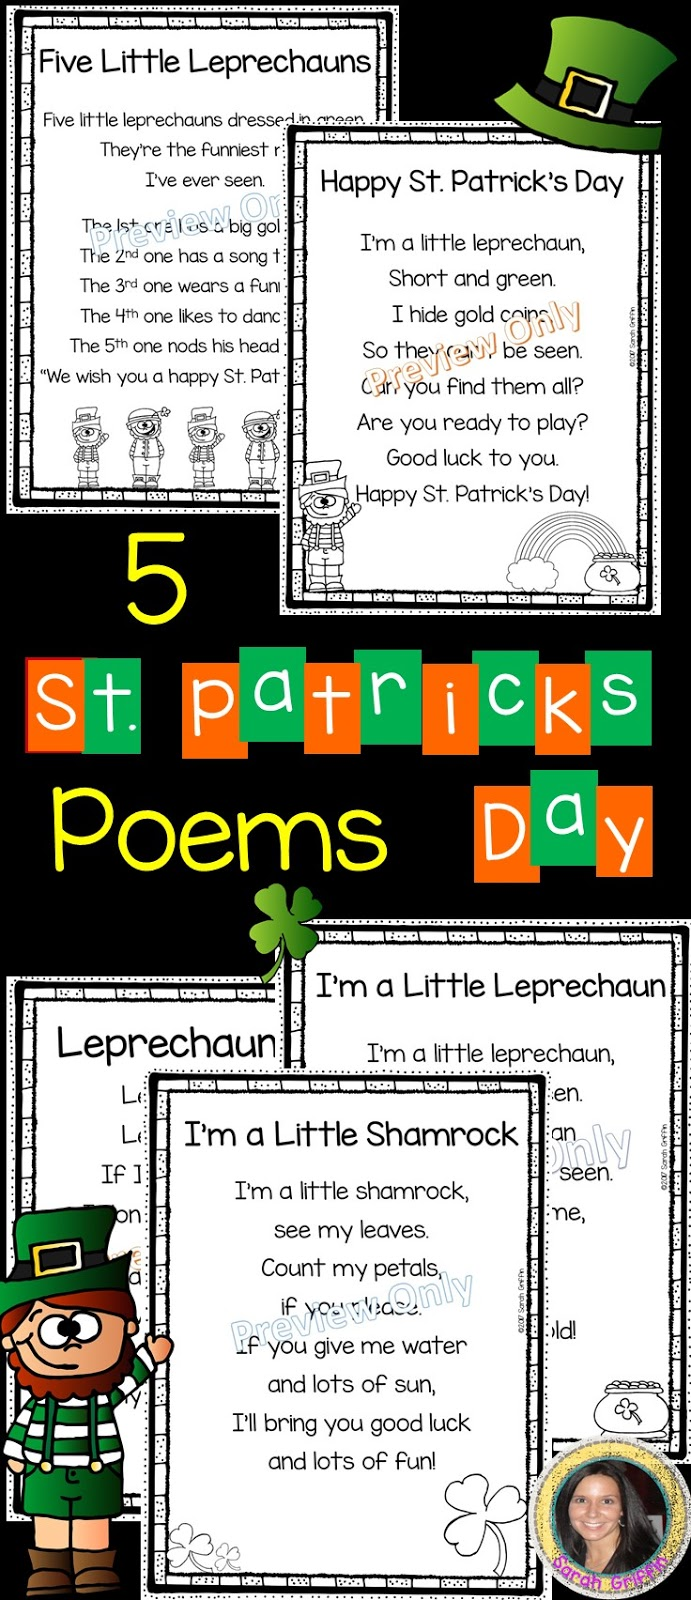 Daughters And Kindergarten 5 St Patricks Day Poems For Kids